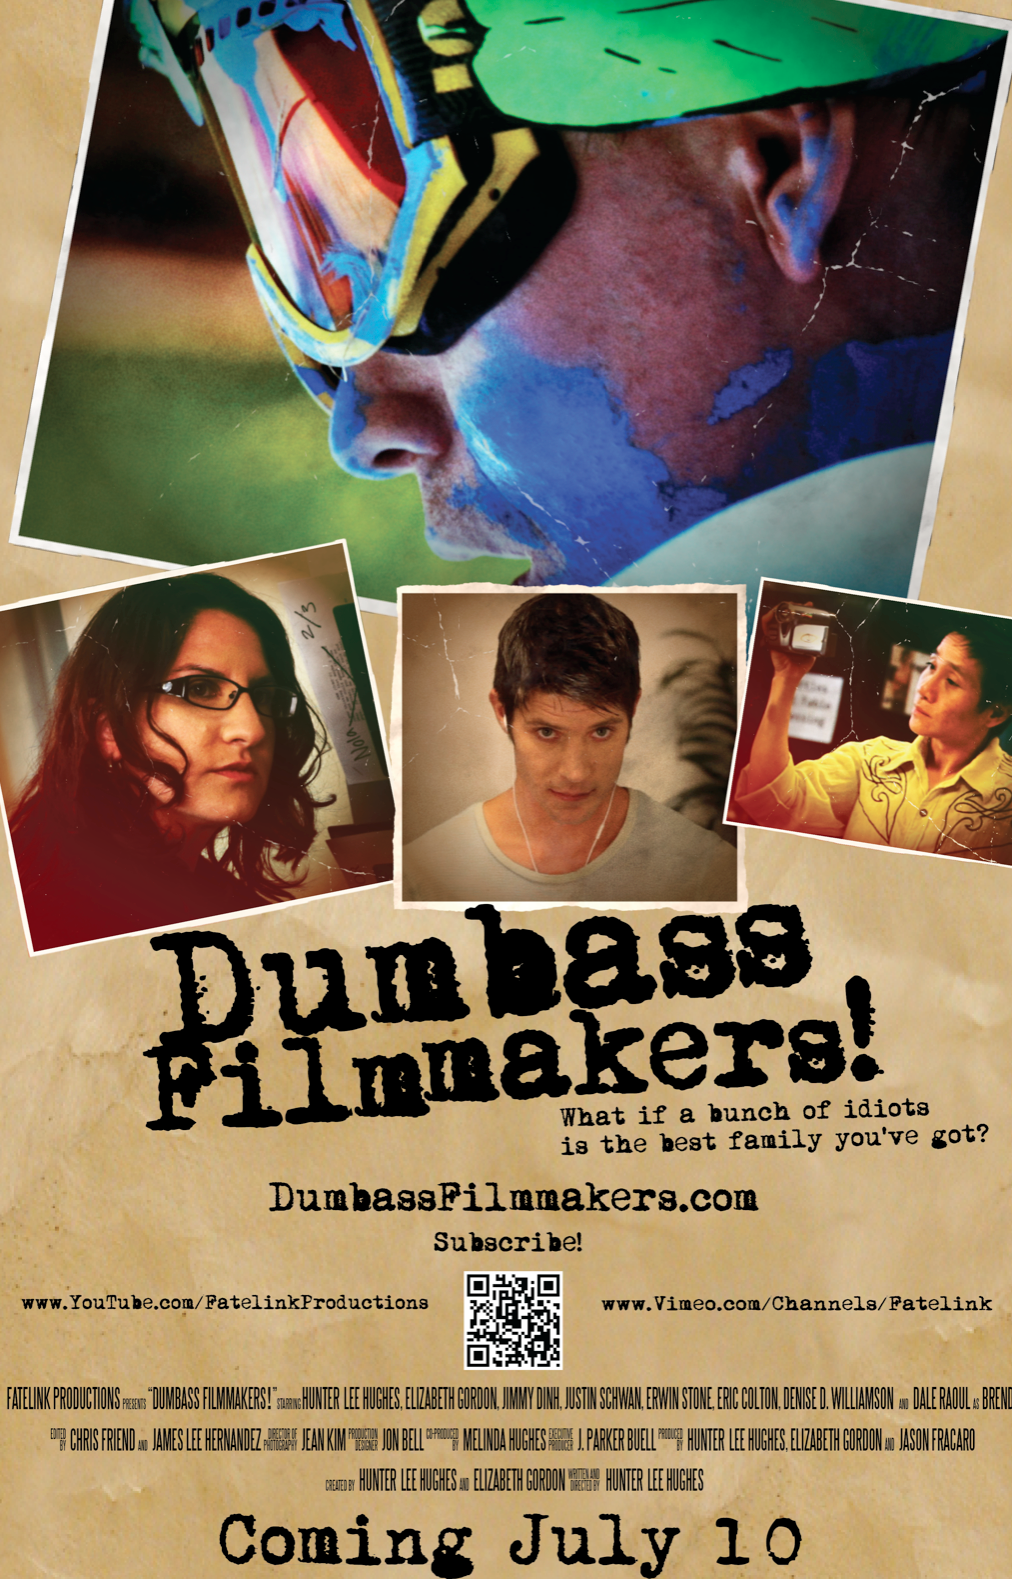 DUMBASS FILMMAKERS!